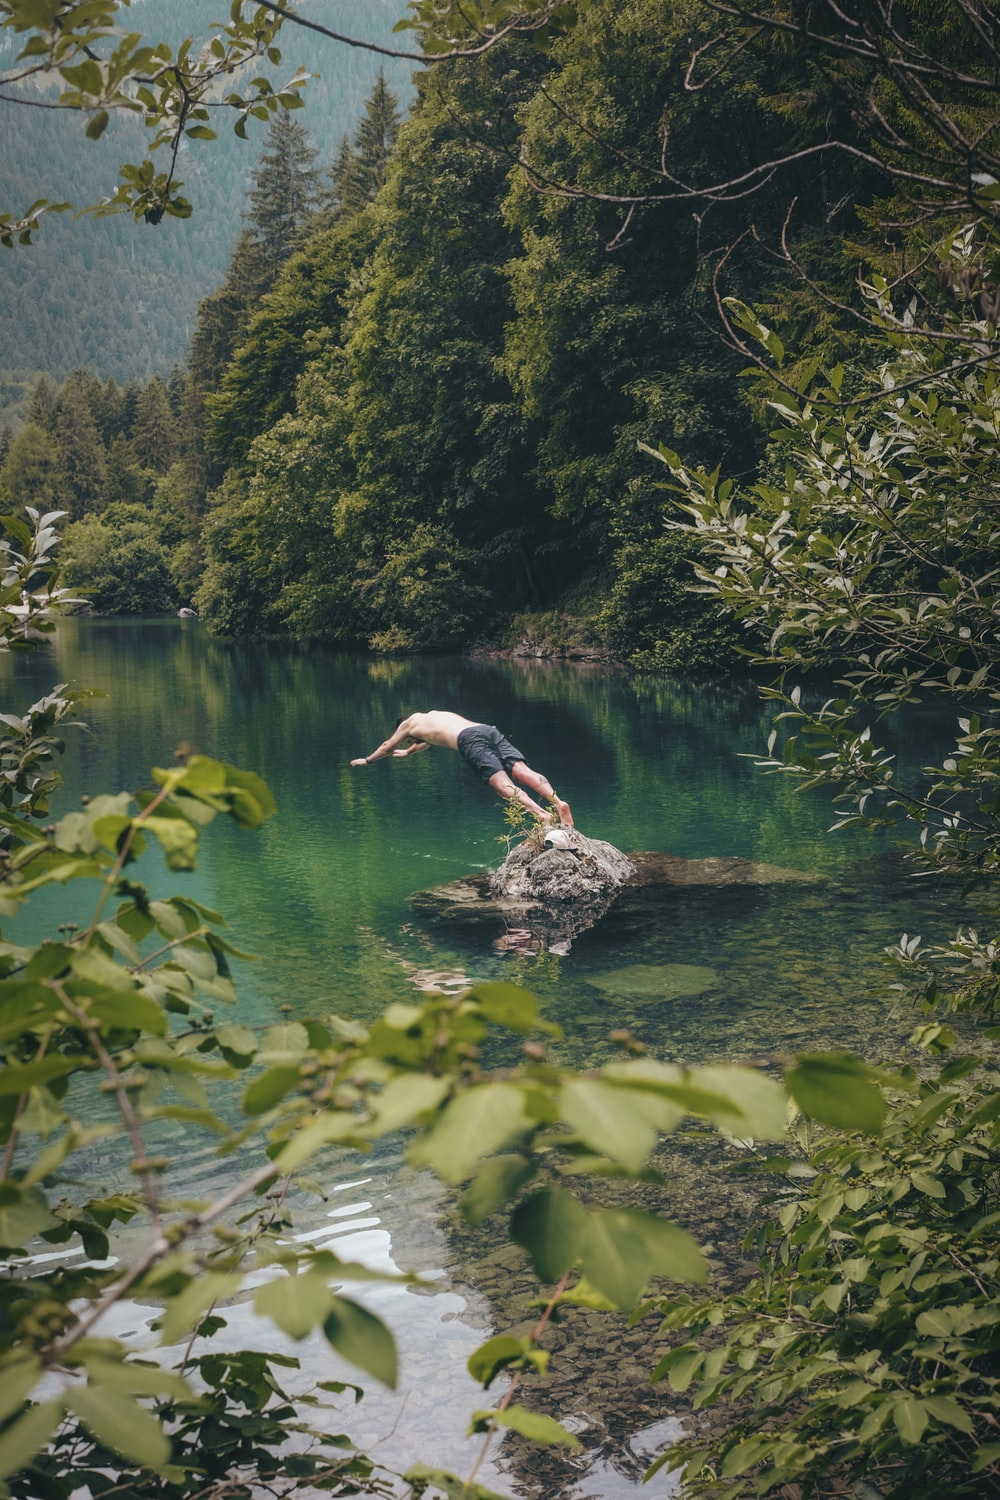 topless man wearing black shorts about to dive on water near trees